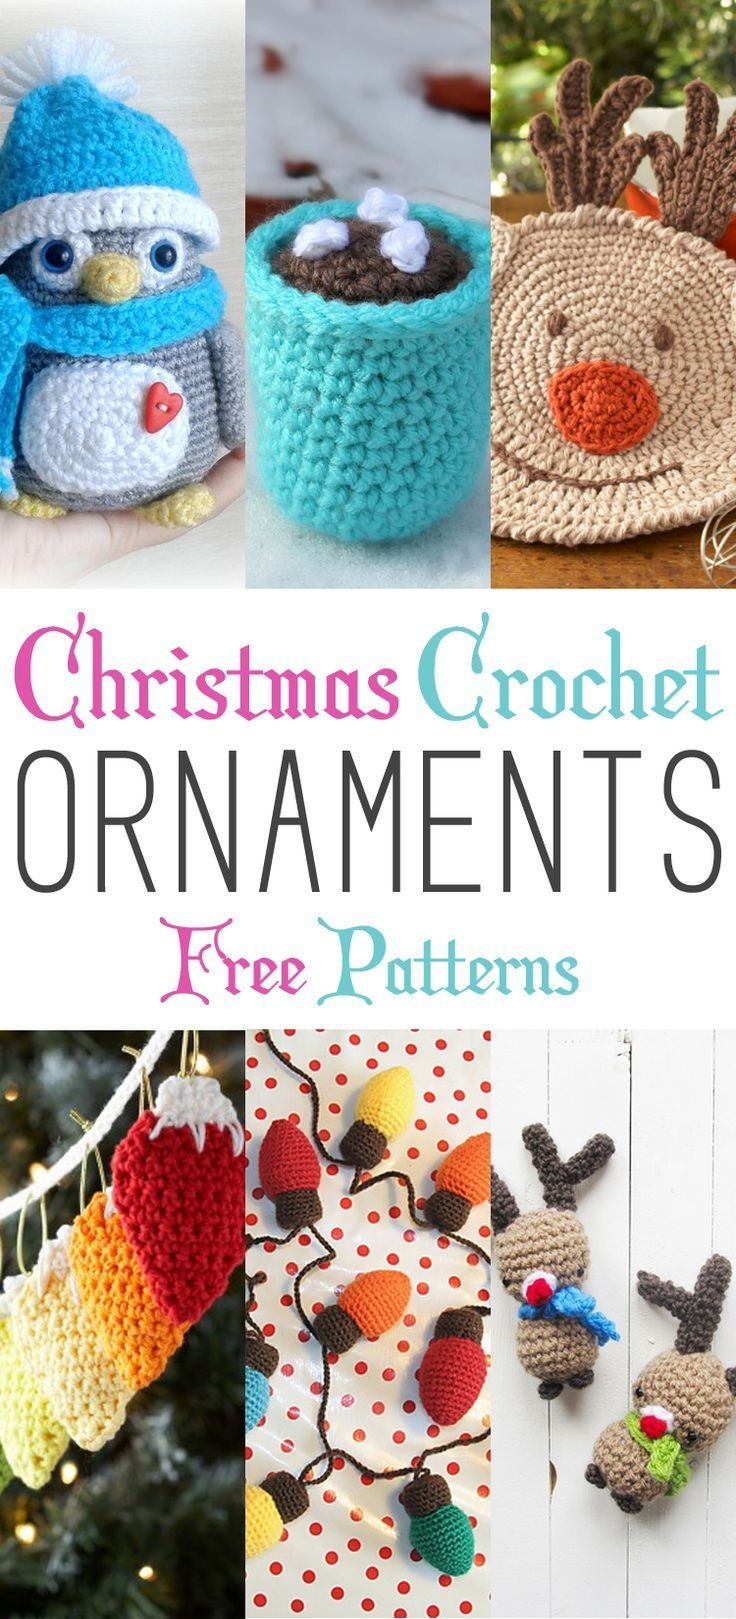 Christmas Crochet Ornaments With Free Patterns | Crochet Christmas - Free Printable Christmas Crochet Patterns